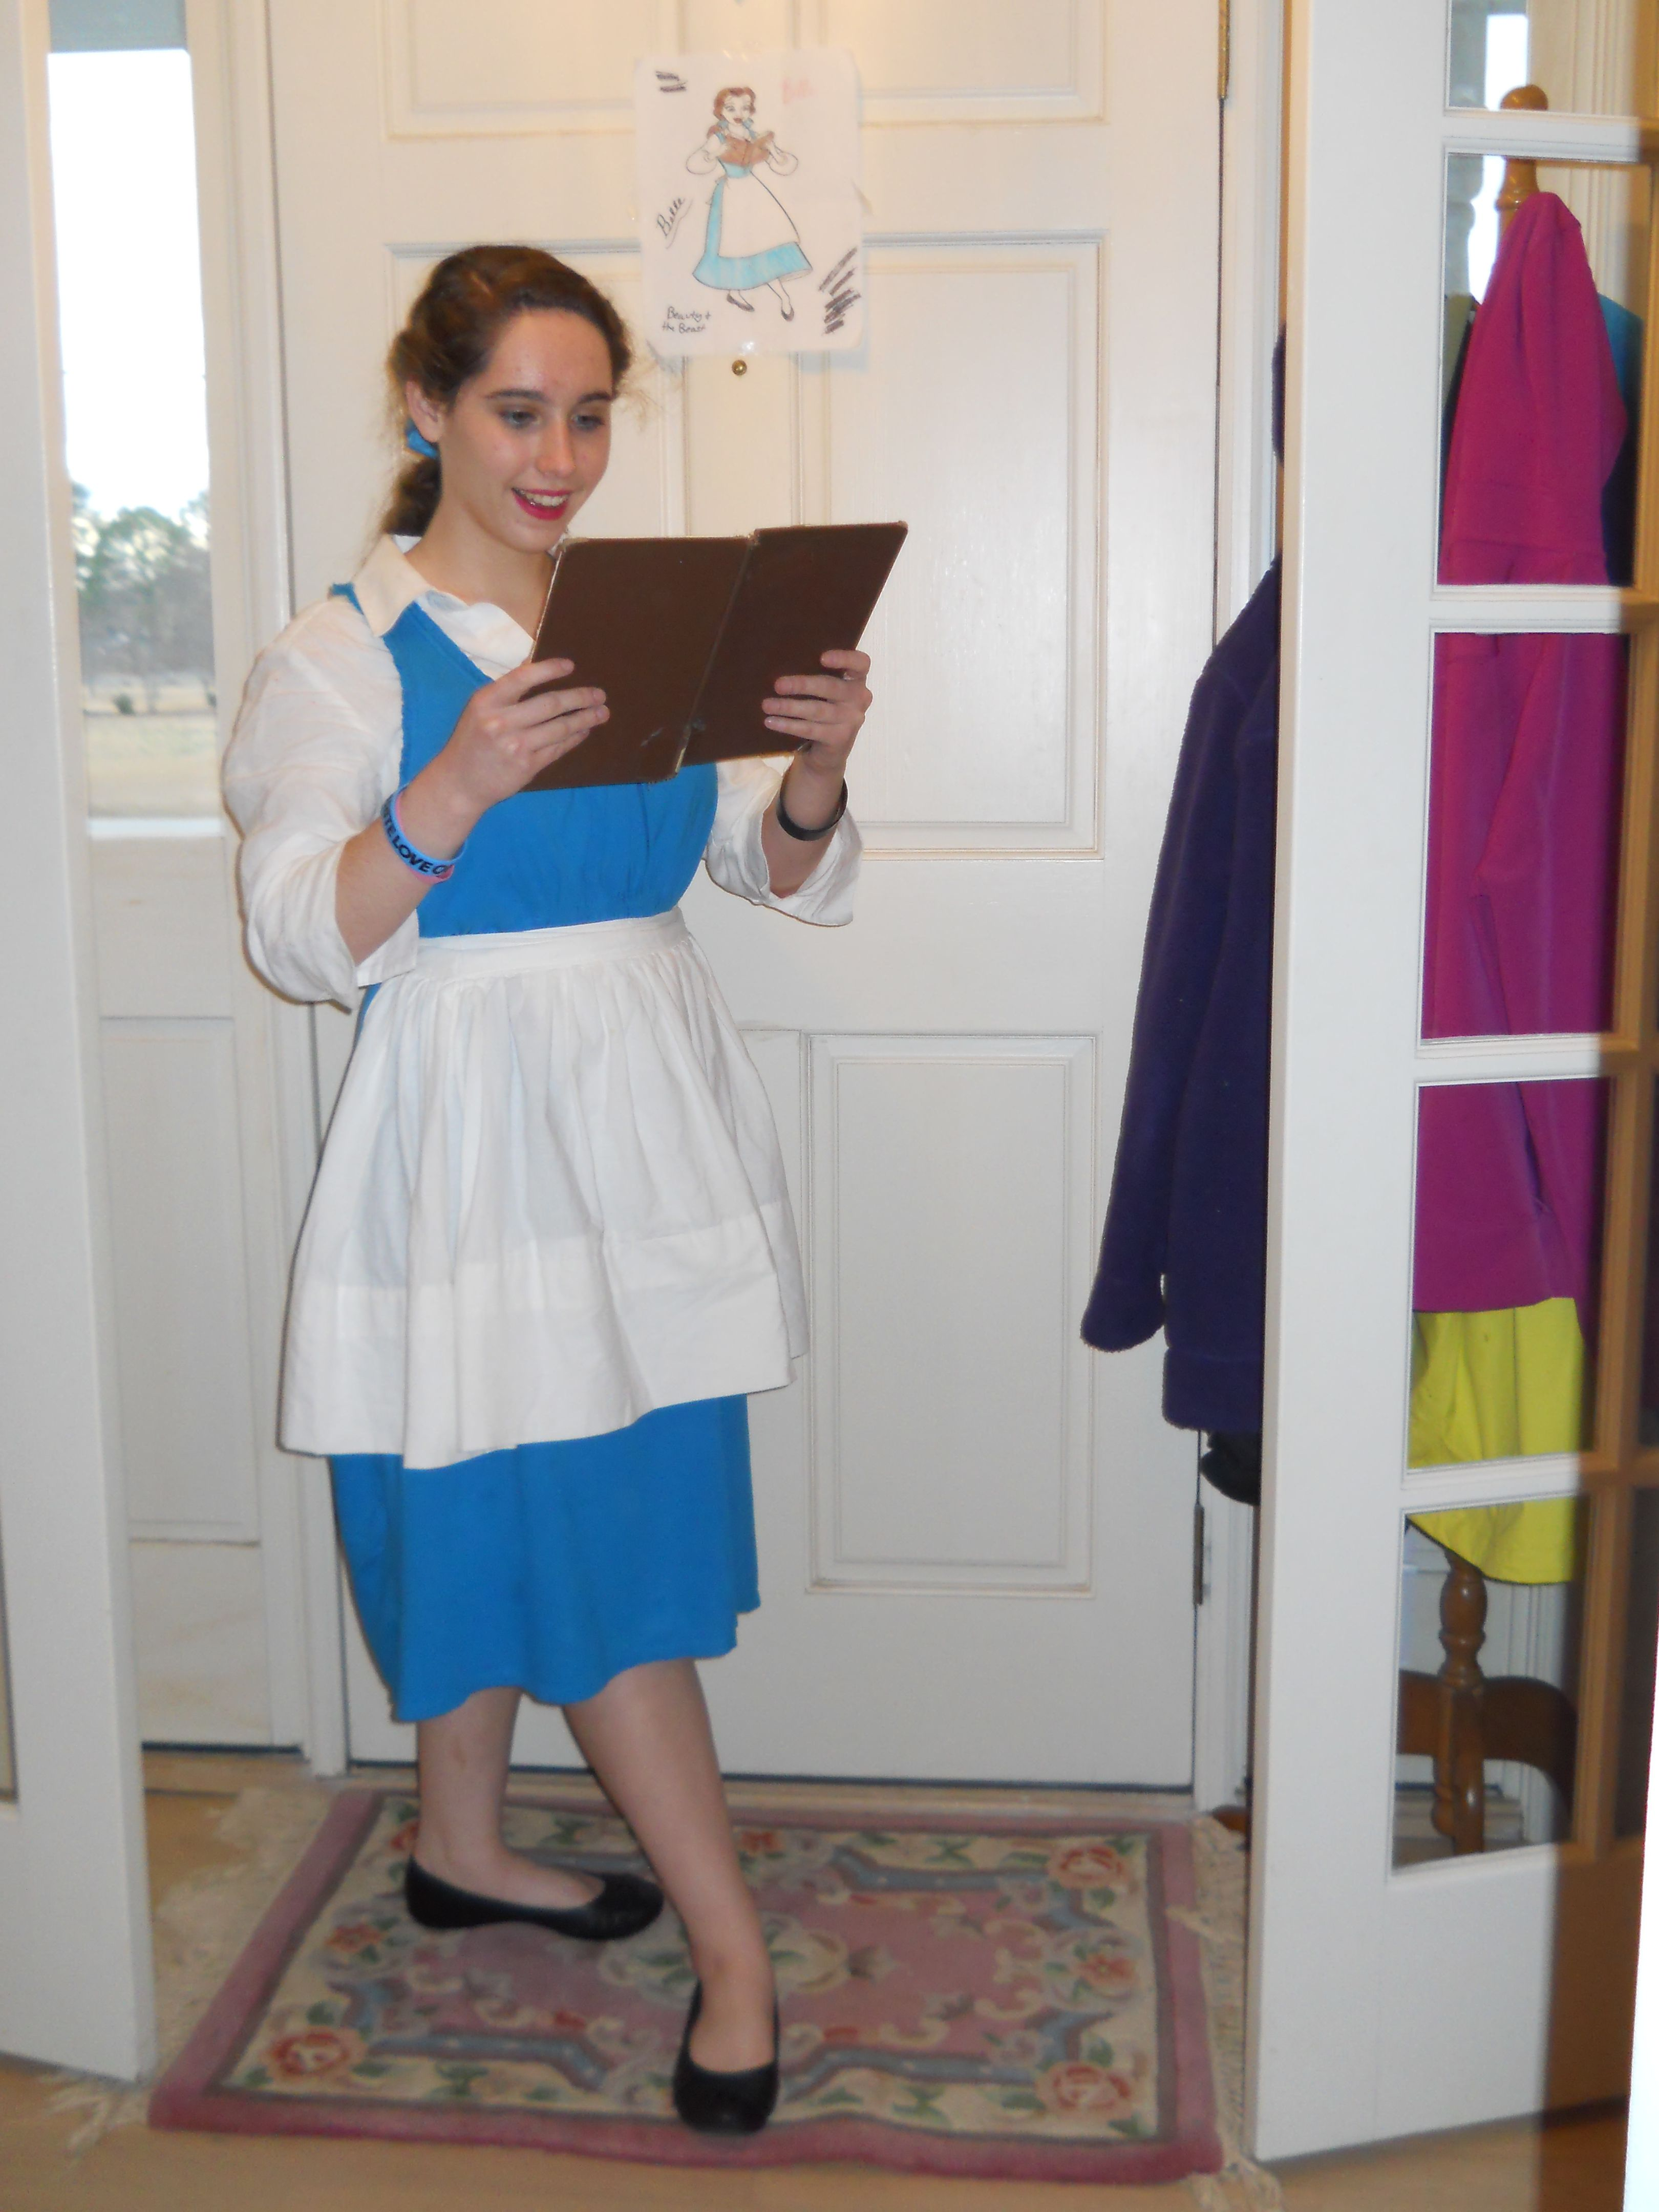 White apron belle - I Did This For Fairy Tale Day For Spirit Week At My School I Am Belle This Is